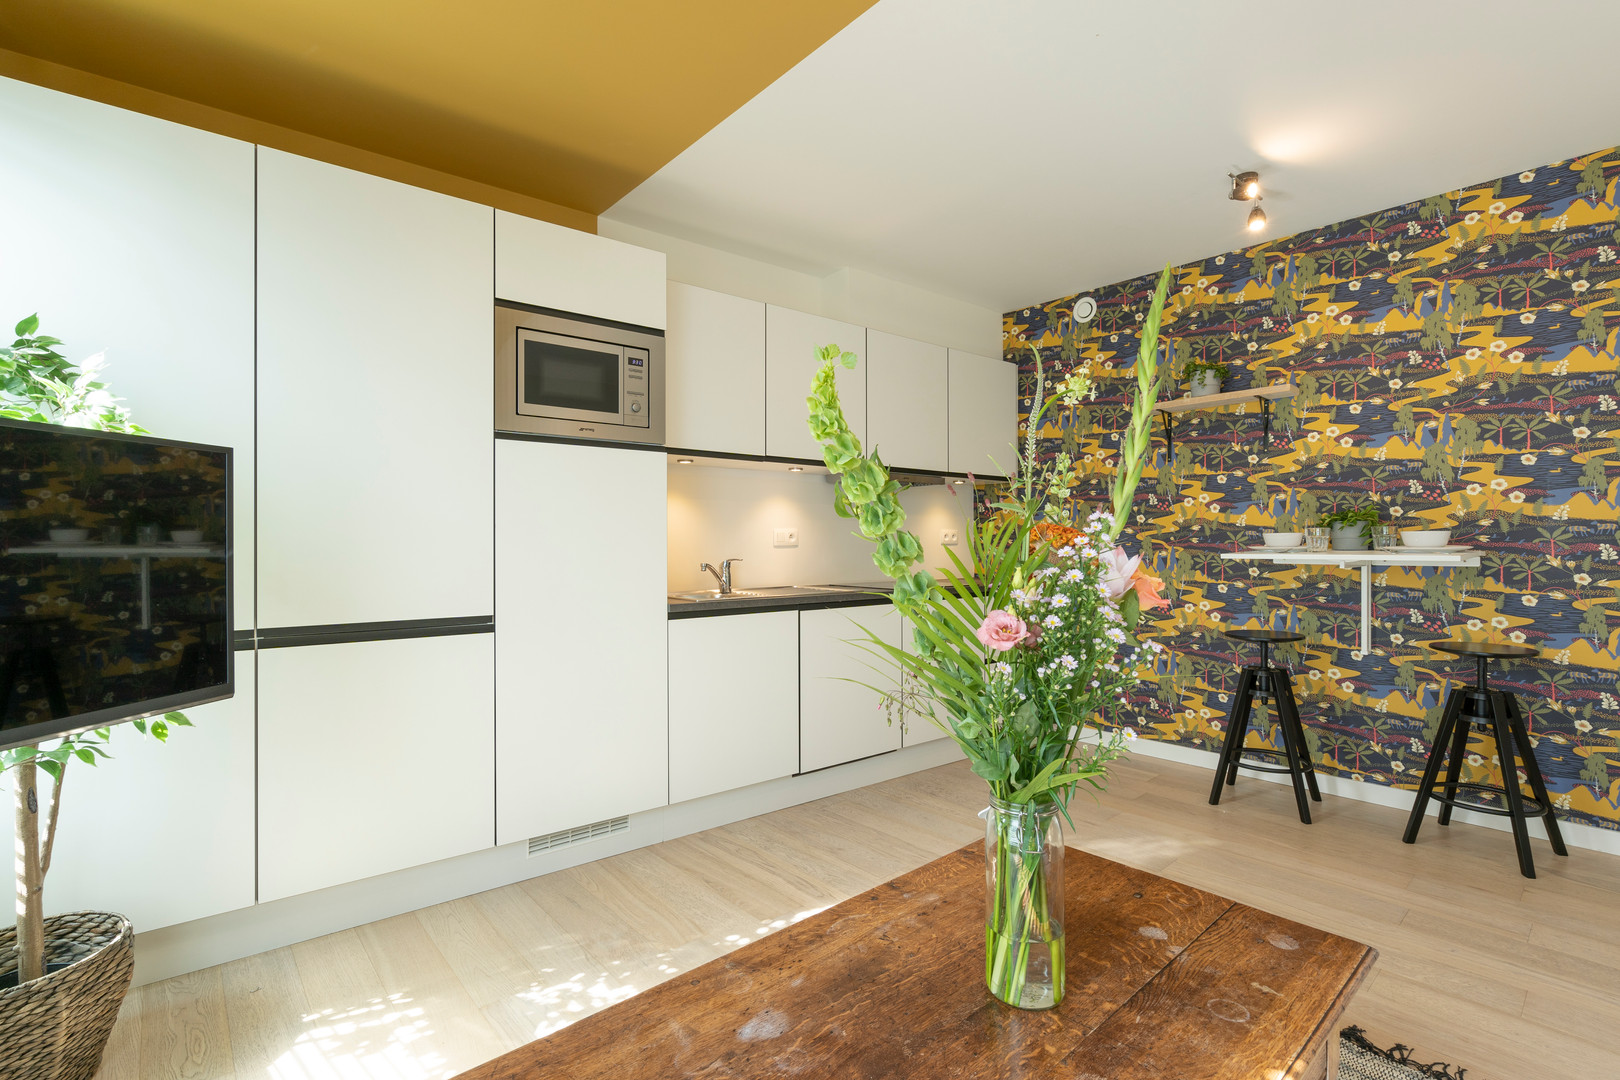 The Indian Yellow - SHWAY 62 - studio kitchen